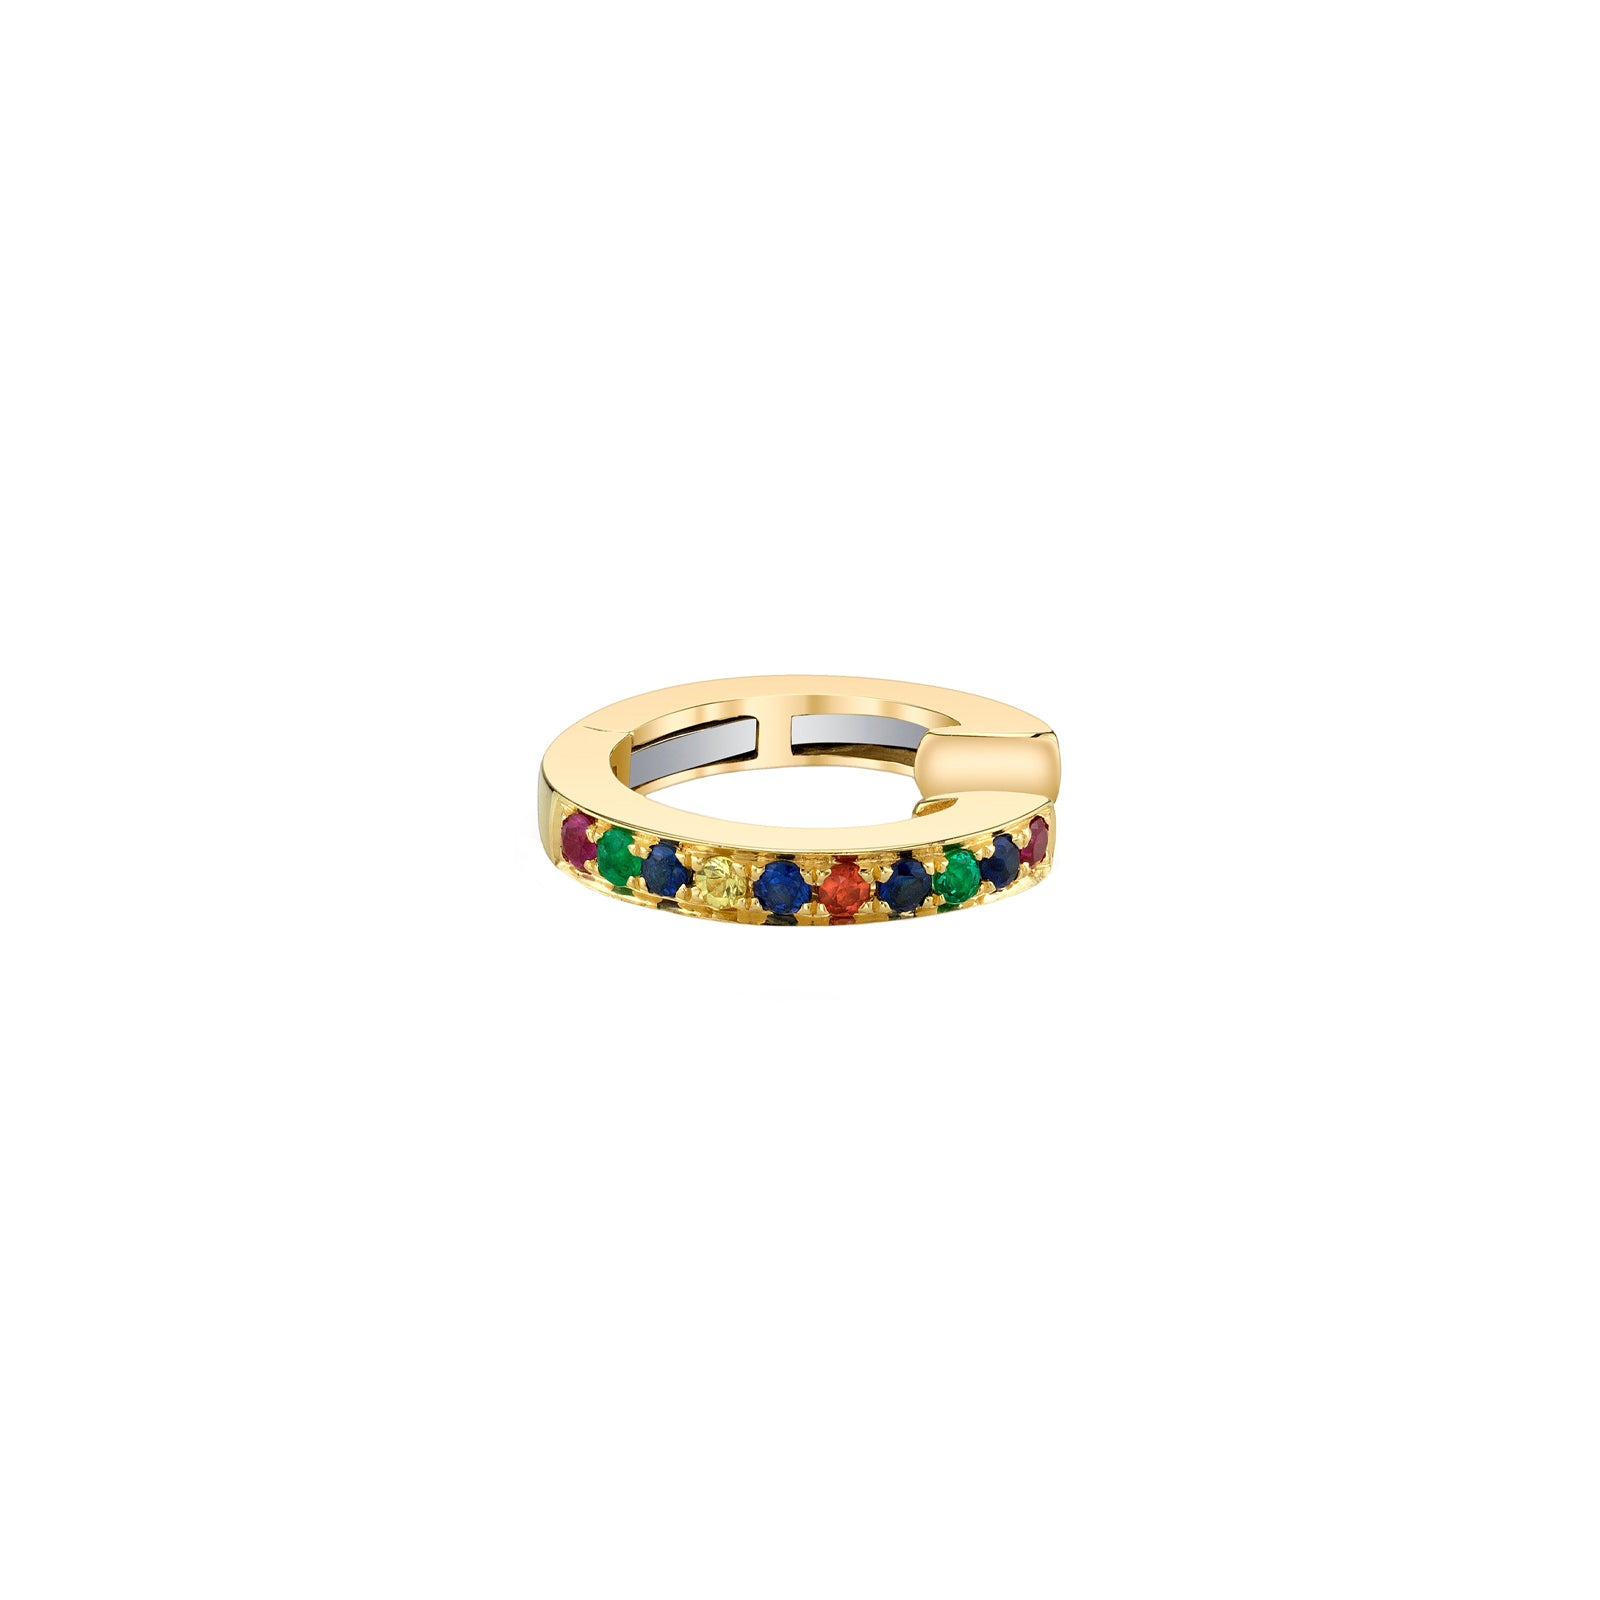 Multi-colored Earcuff by Borgioni for Broken English Jewelry